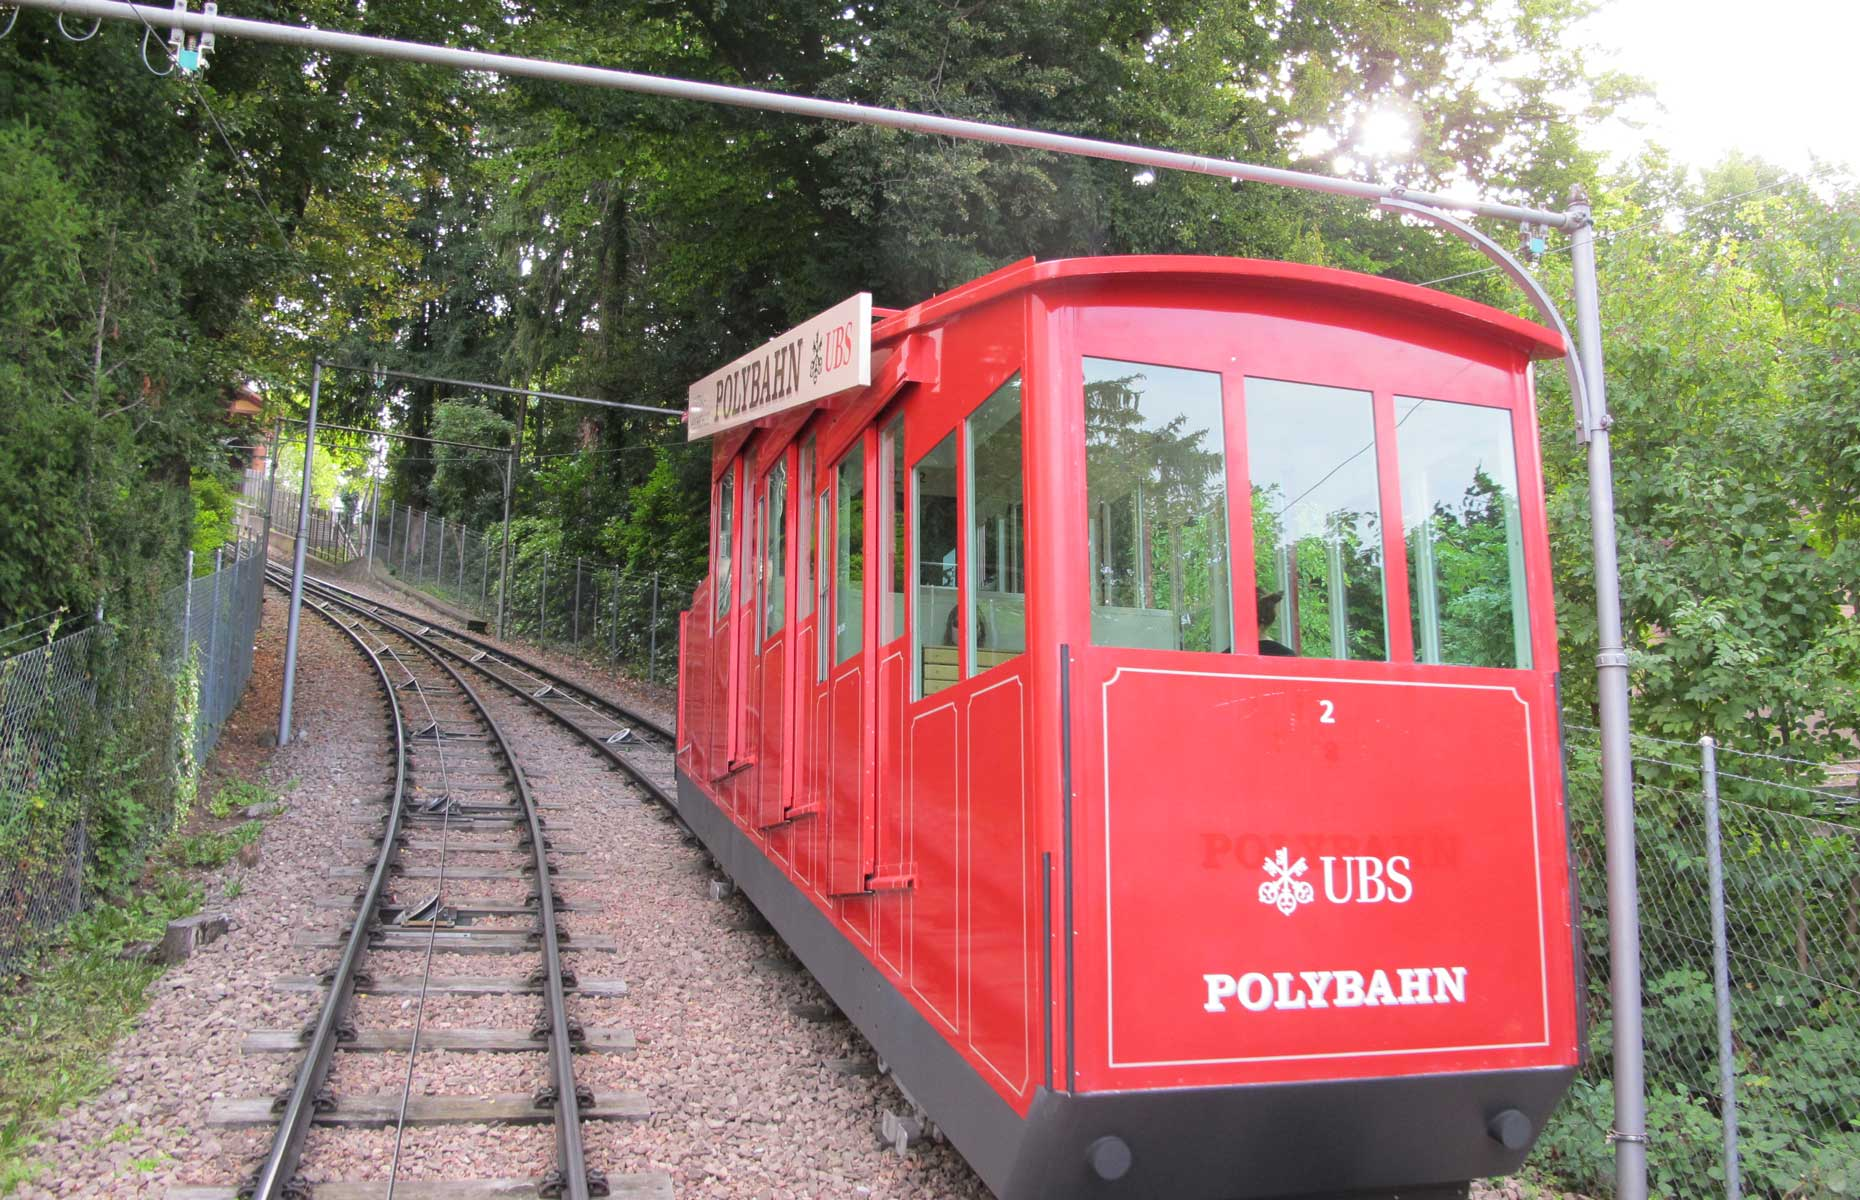 Zurich's funicular known as the Polybahn